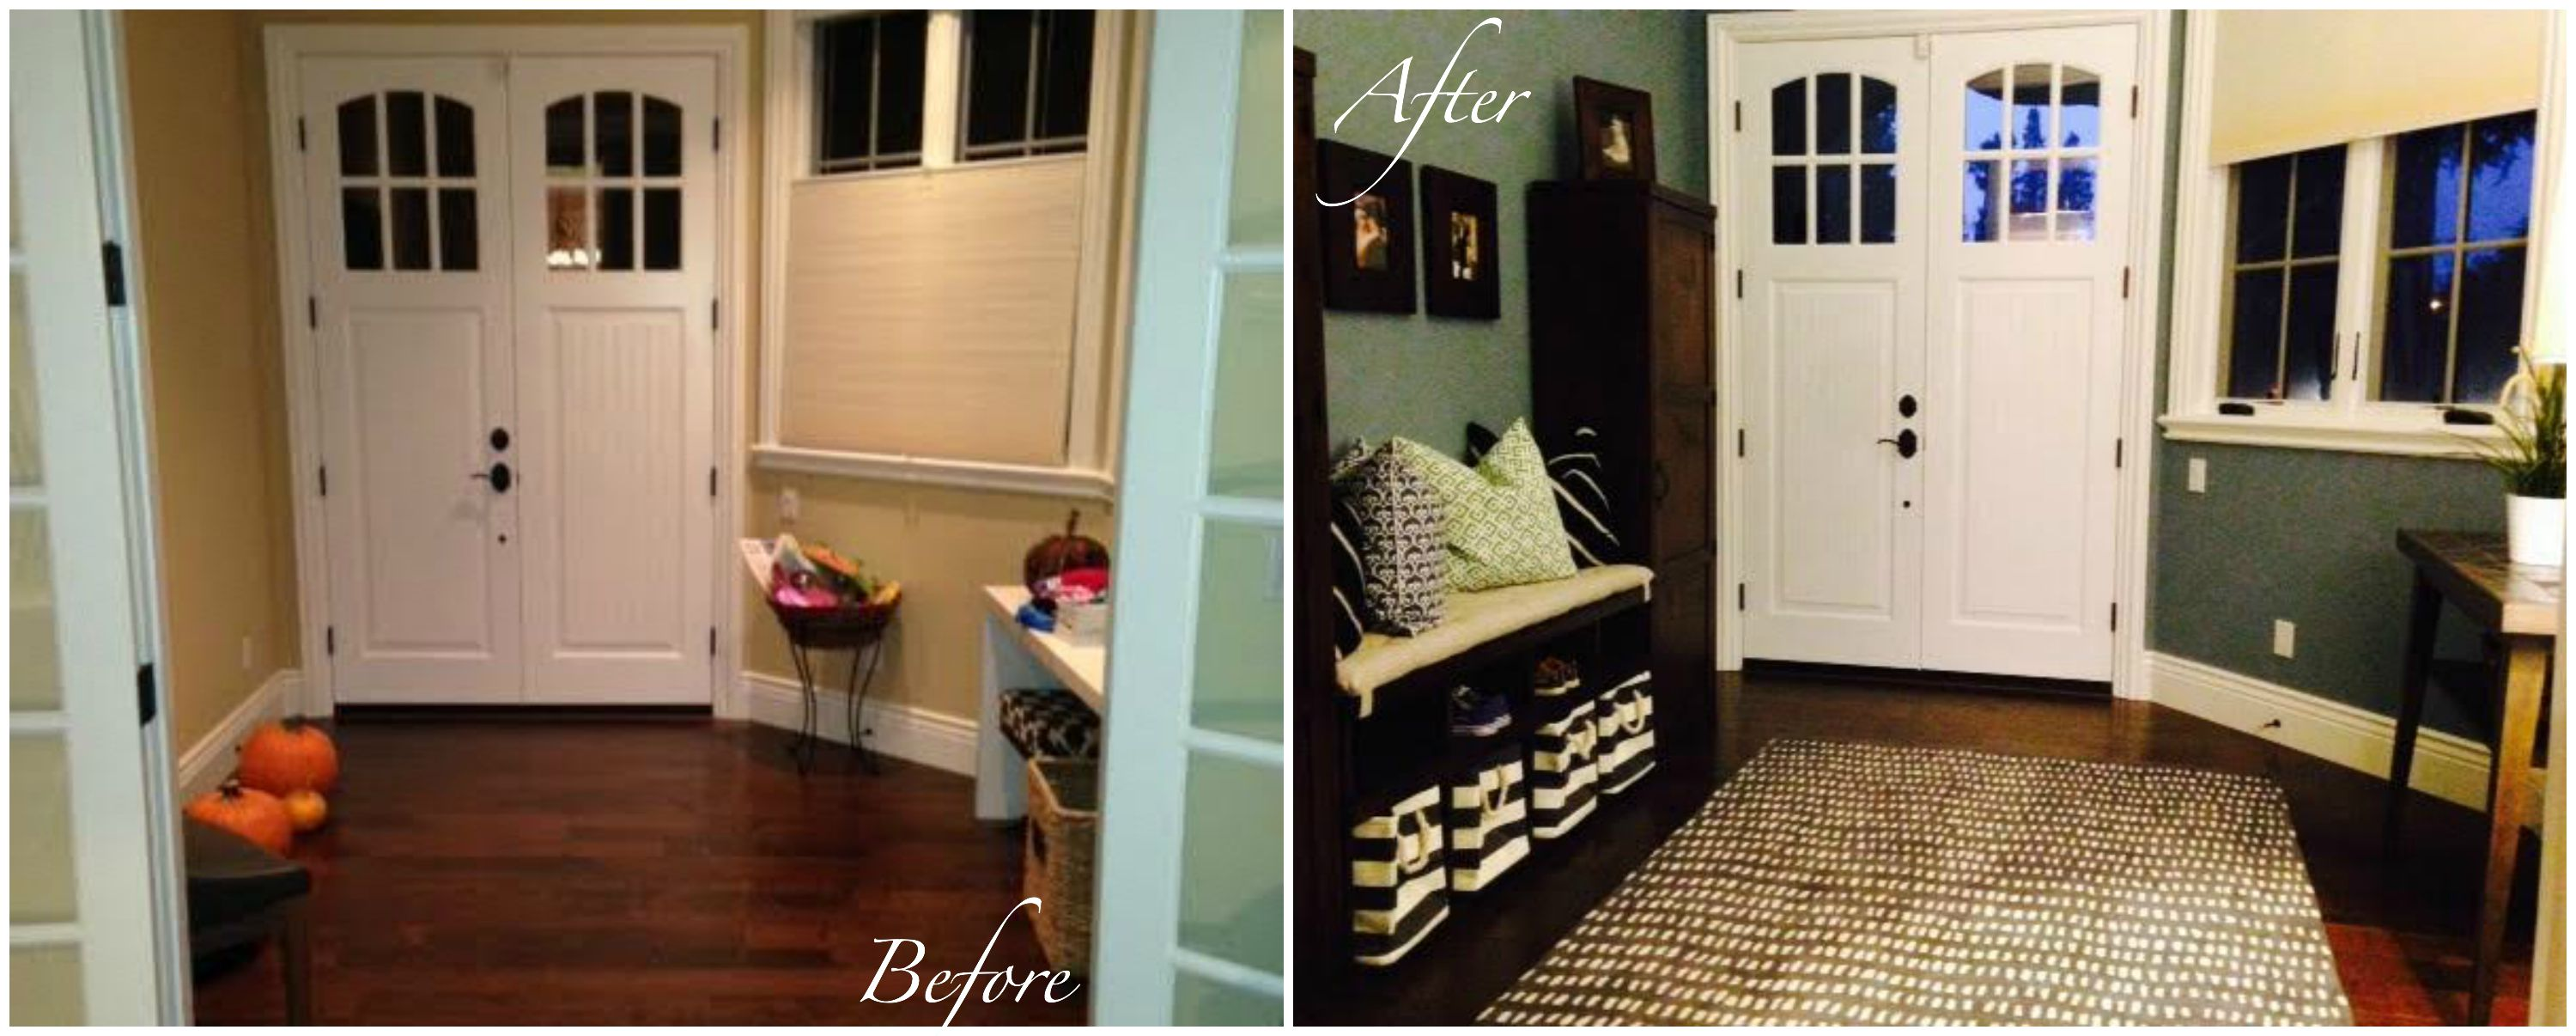 Before & After Entry